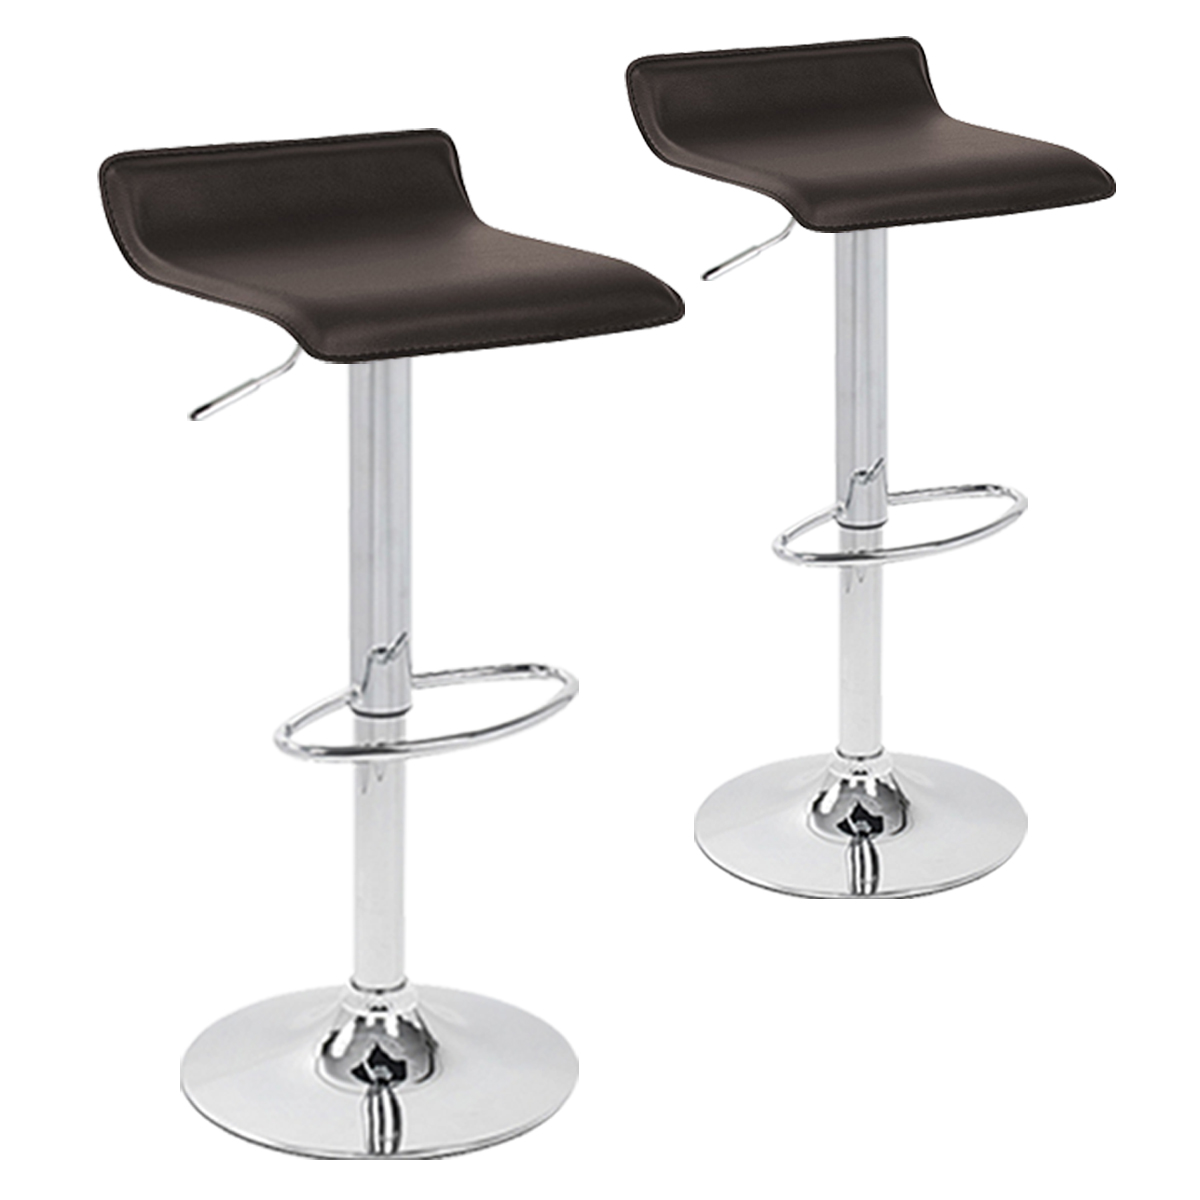 New Kitchen Chair Bar Stool Airlift Swivel Barstools  : 39121at from www.ebay.com size 1200 x 1200 jpeg 219kB